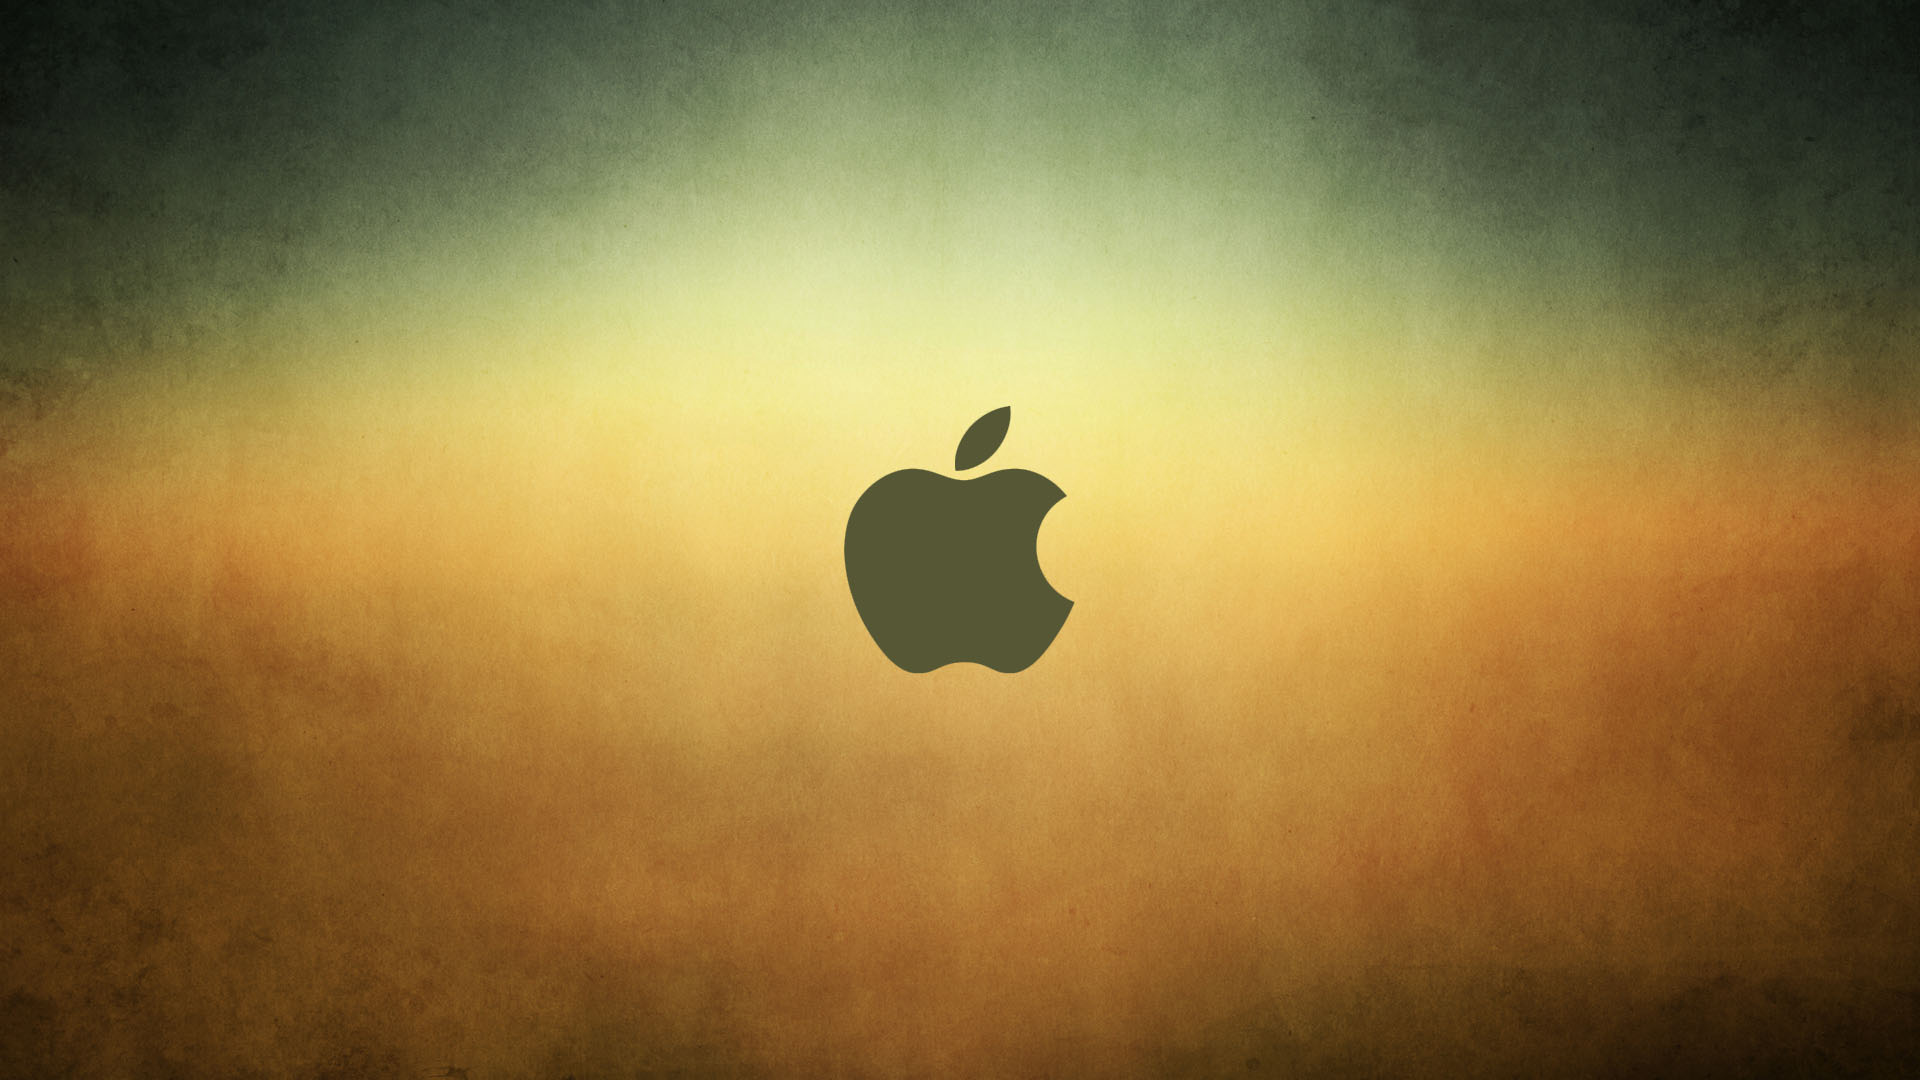 Apple New 2012 Wallpapers HD Wallpapers 1920x1080